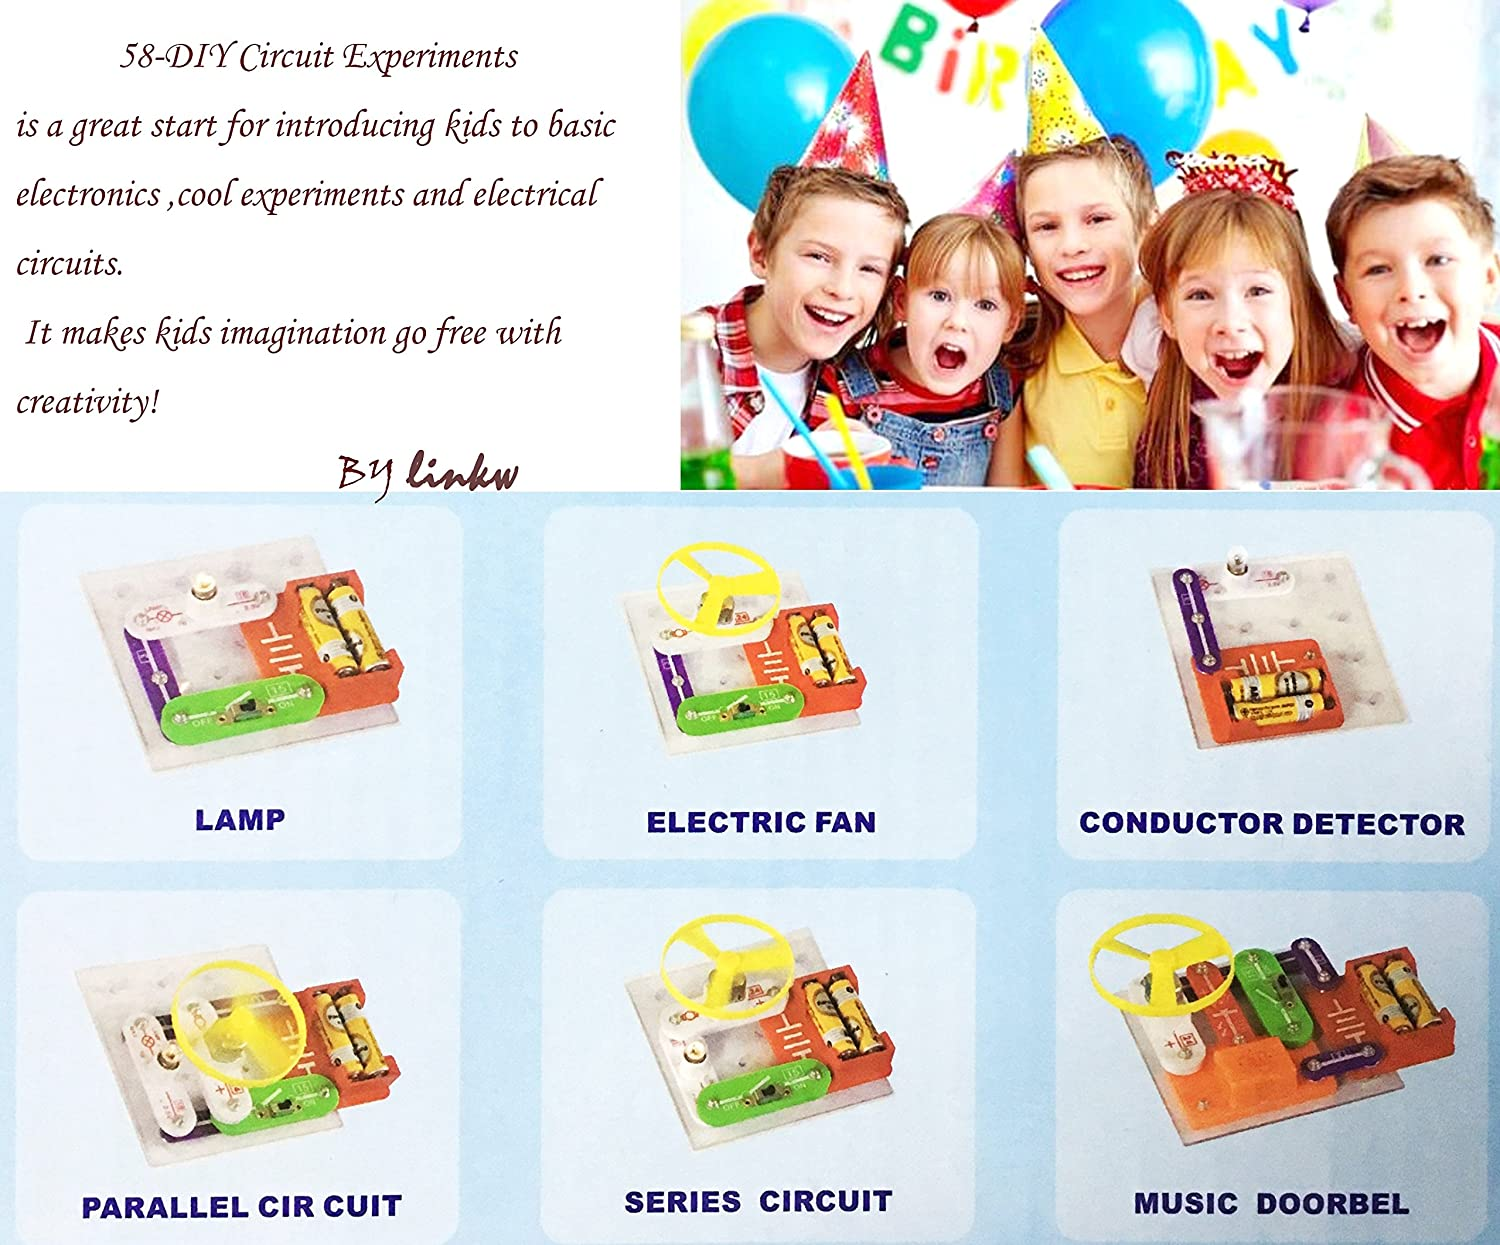 58 Diy Circuits For Kidskids Circuitskids Circuit Kit Elenco Snap Pro Sc500 Electronics Discovery Science Kitscience Experiments Kidsscience Kits Kidselectronic Building Block